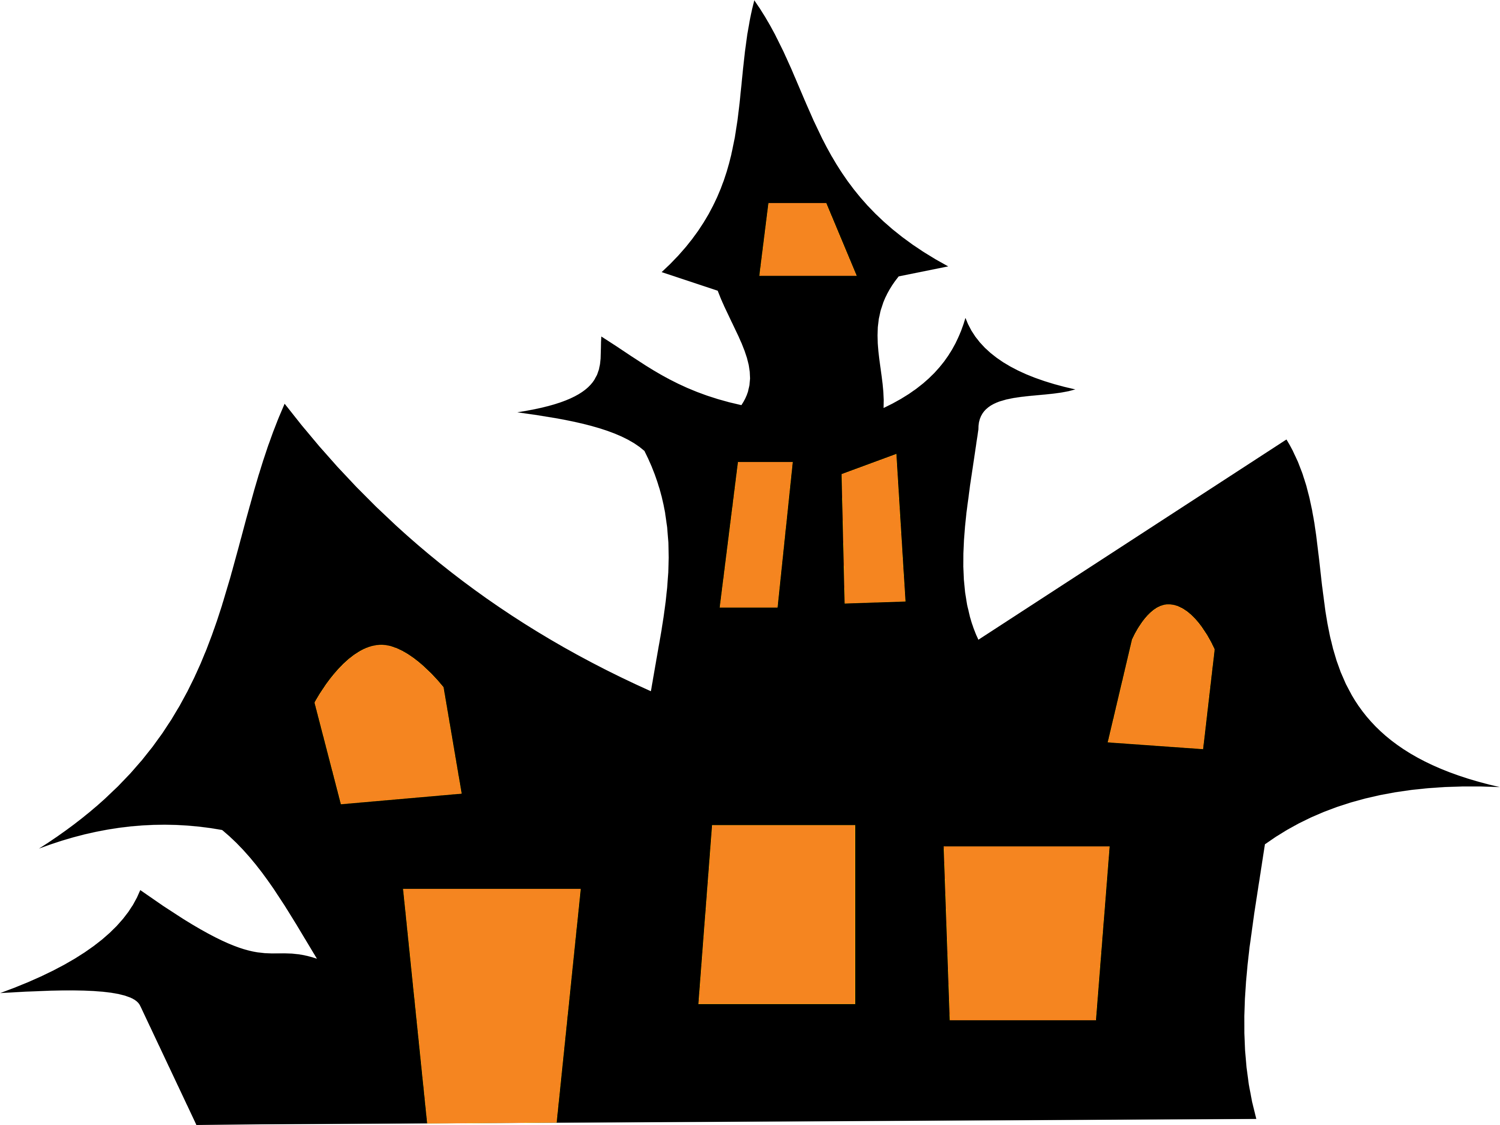 Haunted house silhouette png. Clip art black and